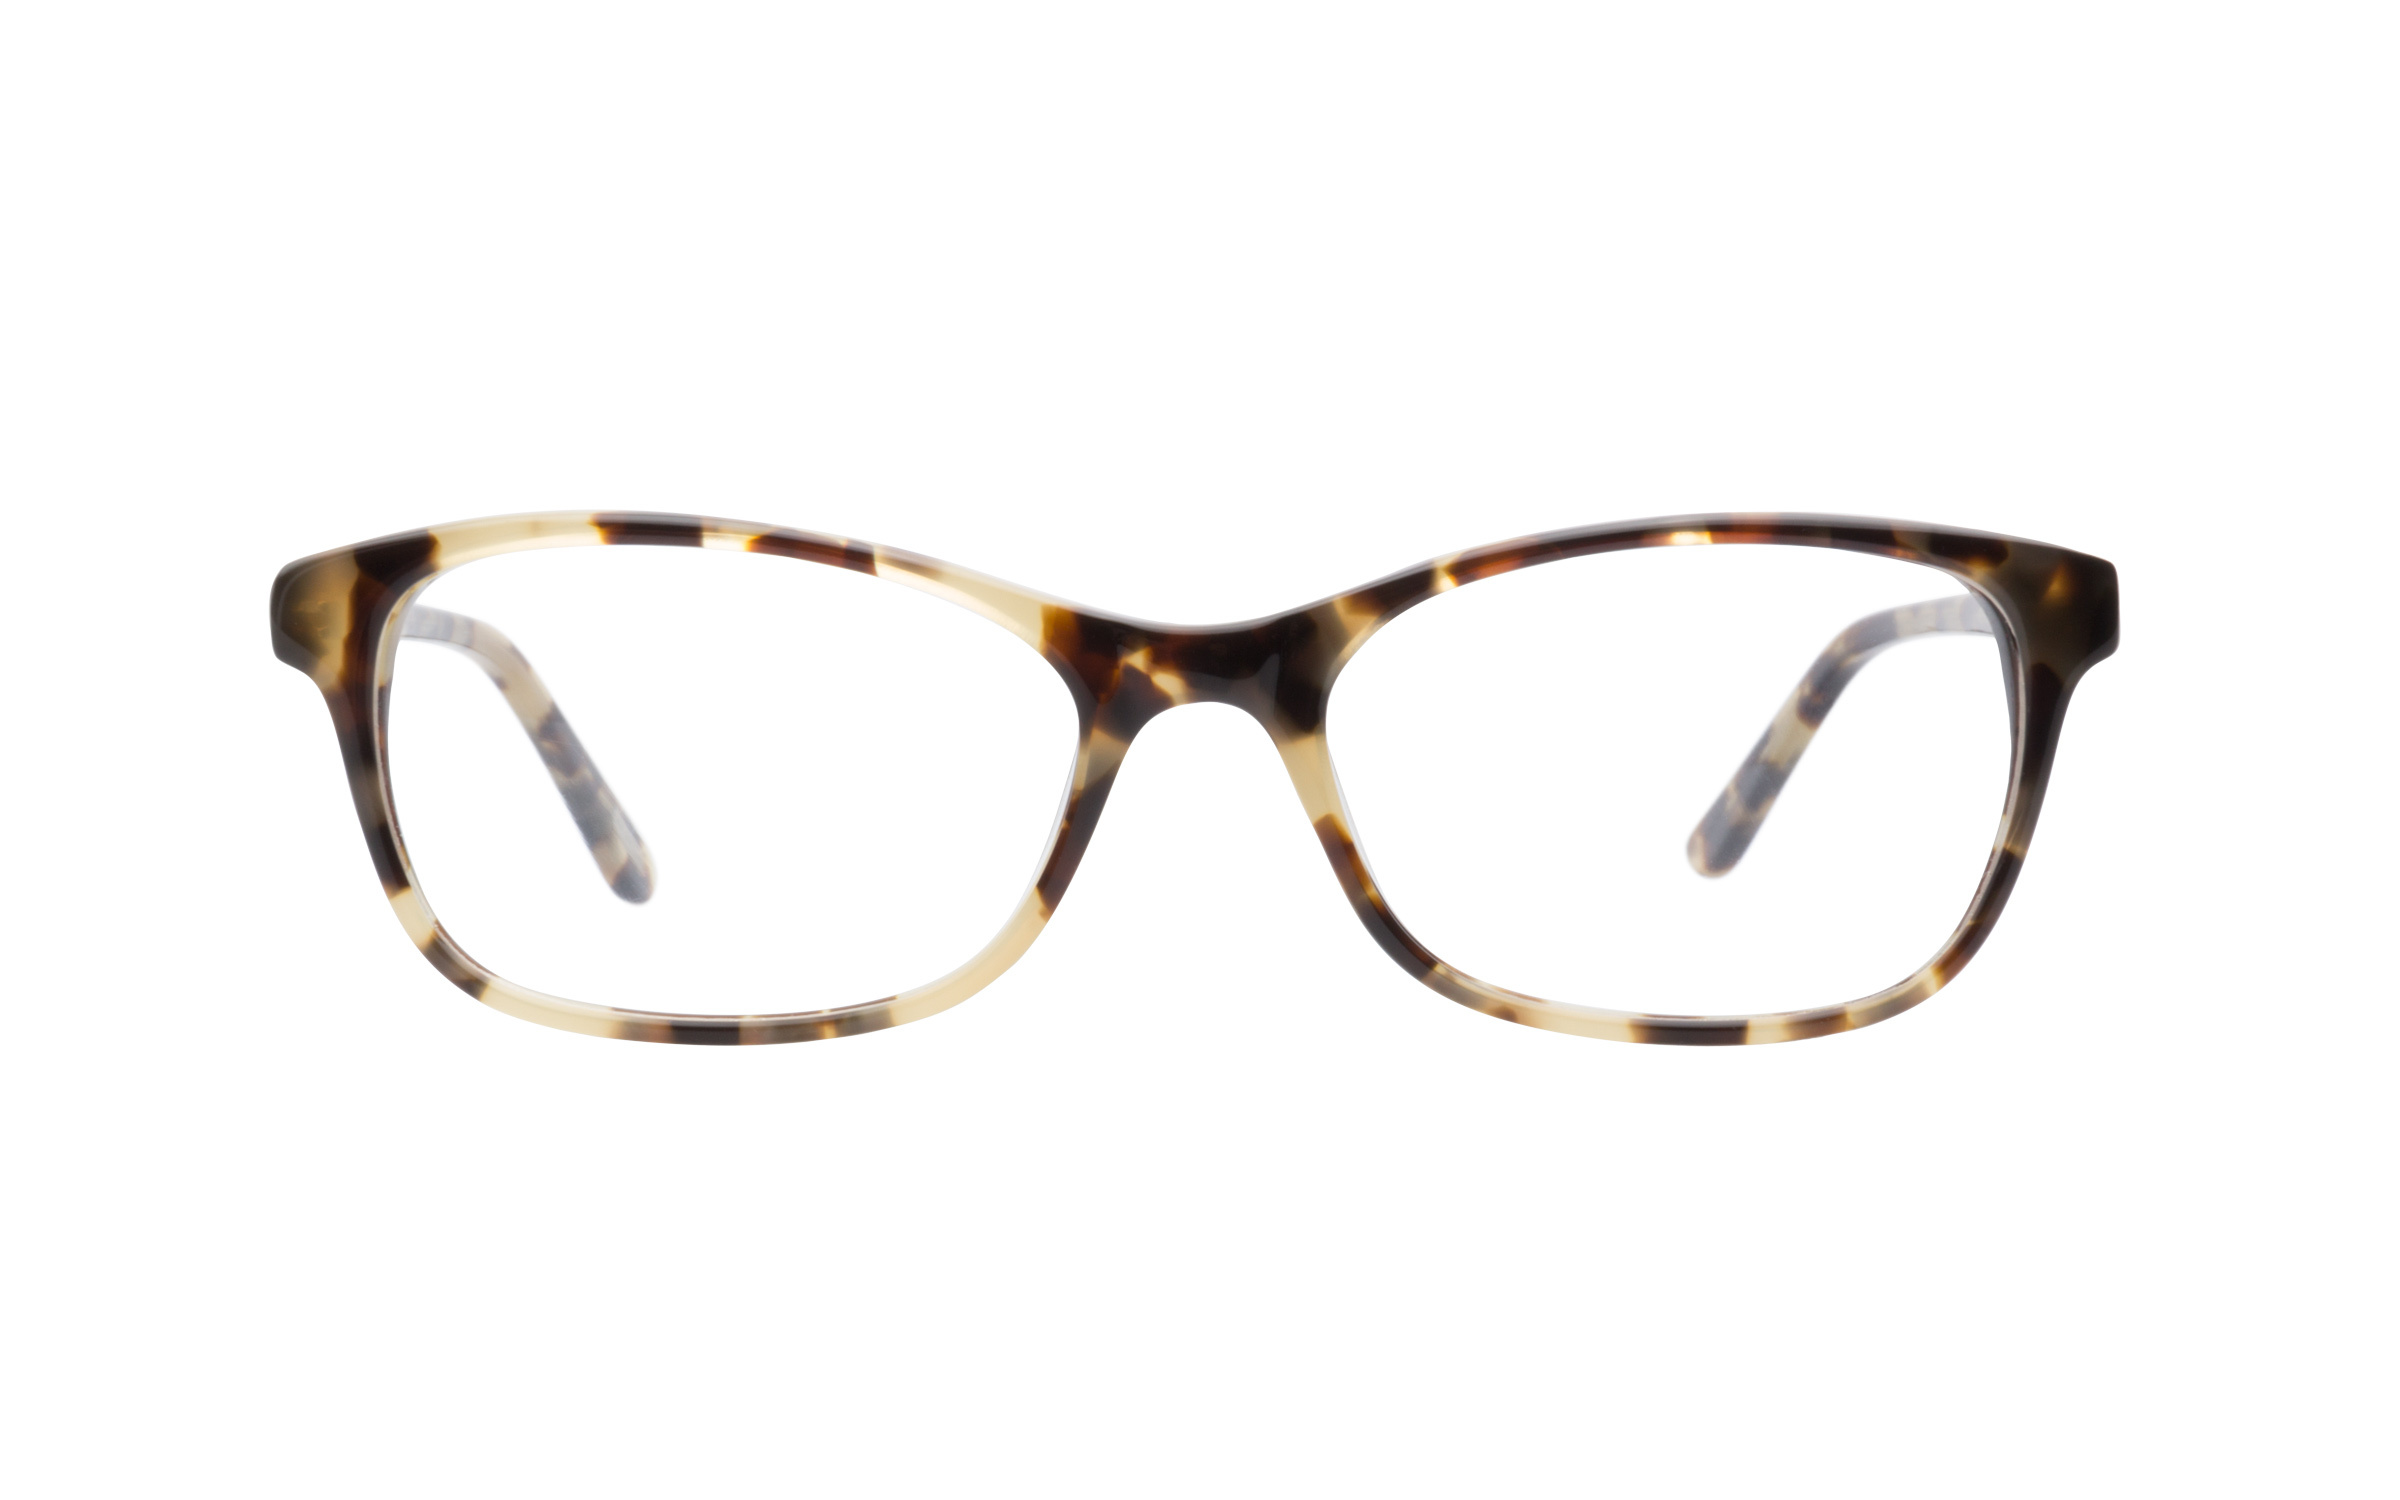 Kam_Dhillon_Womens_Glasses_Tortoise_Acetate_Online_Clearly